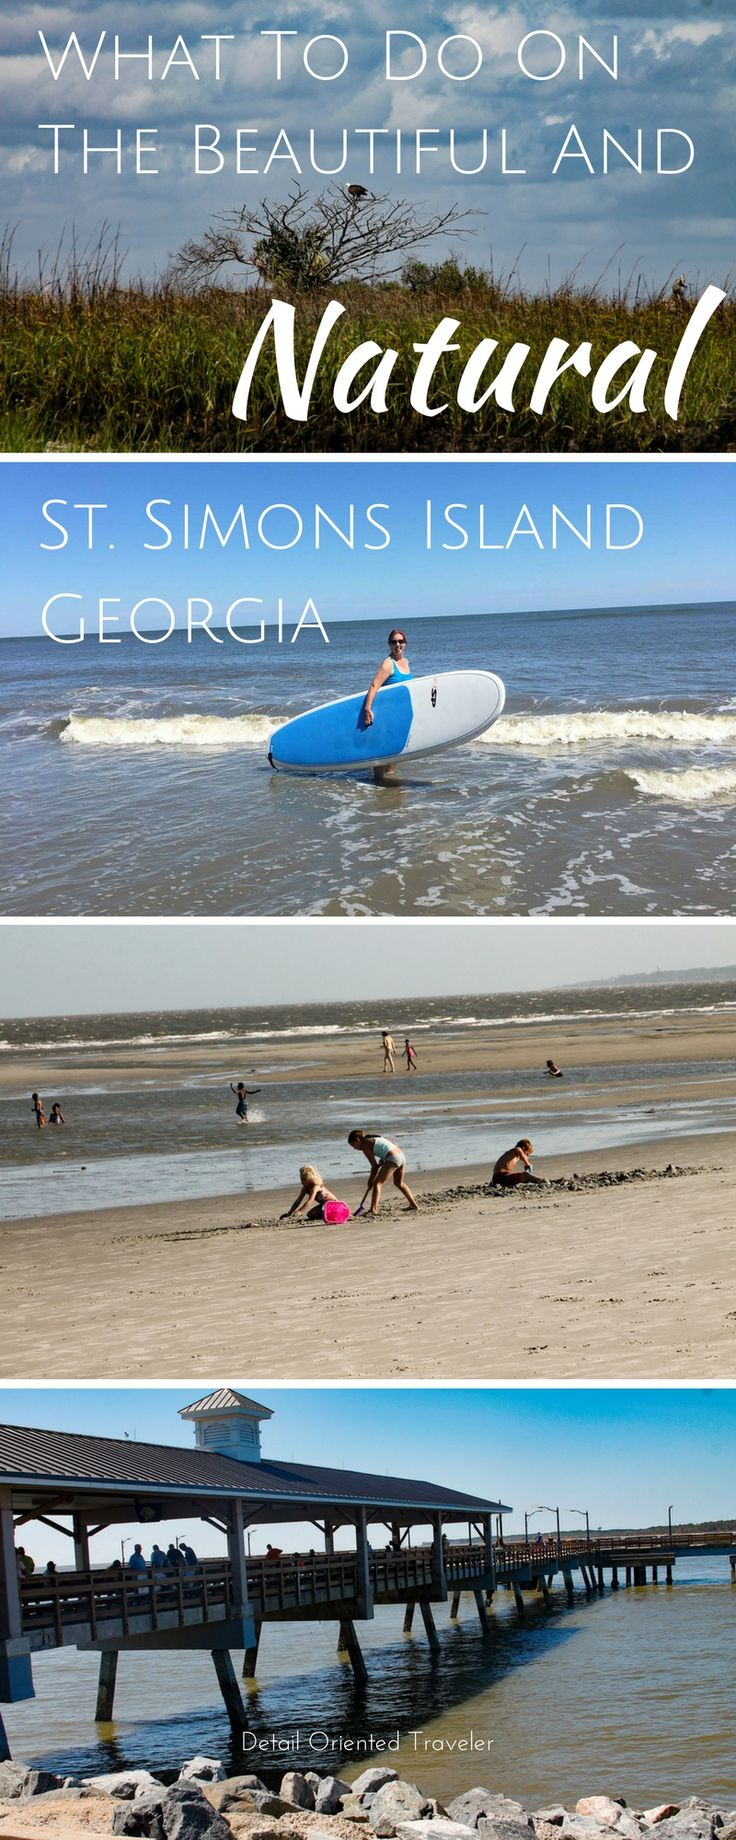 St. Simons Island Georgia is full of natural beauty, native and migratory wildlife and family fun activities. Here's what to do on this hidden gem of an island.